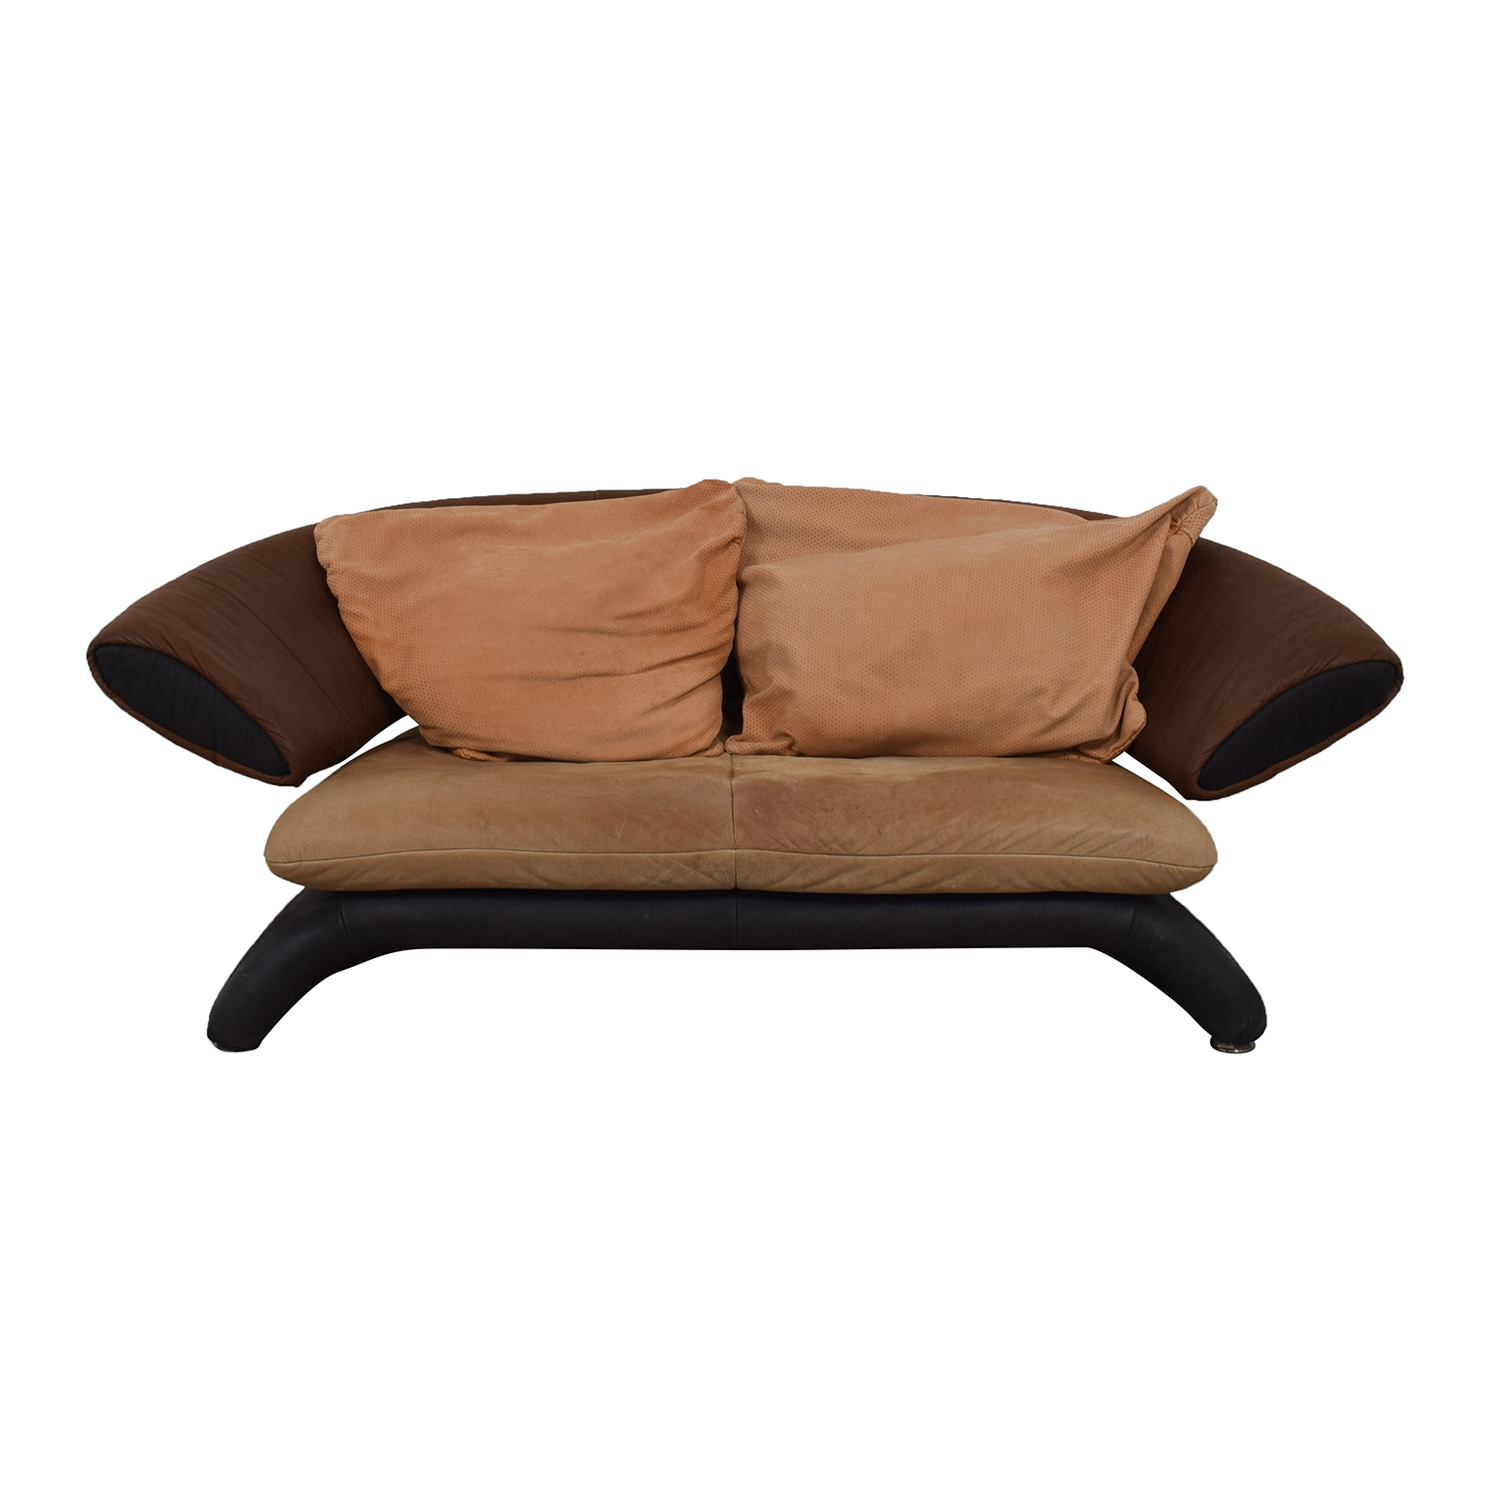 Koinor Koinor Brown Multi-Colored Love Seat discount